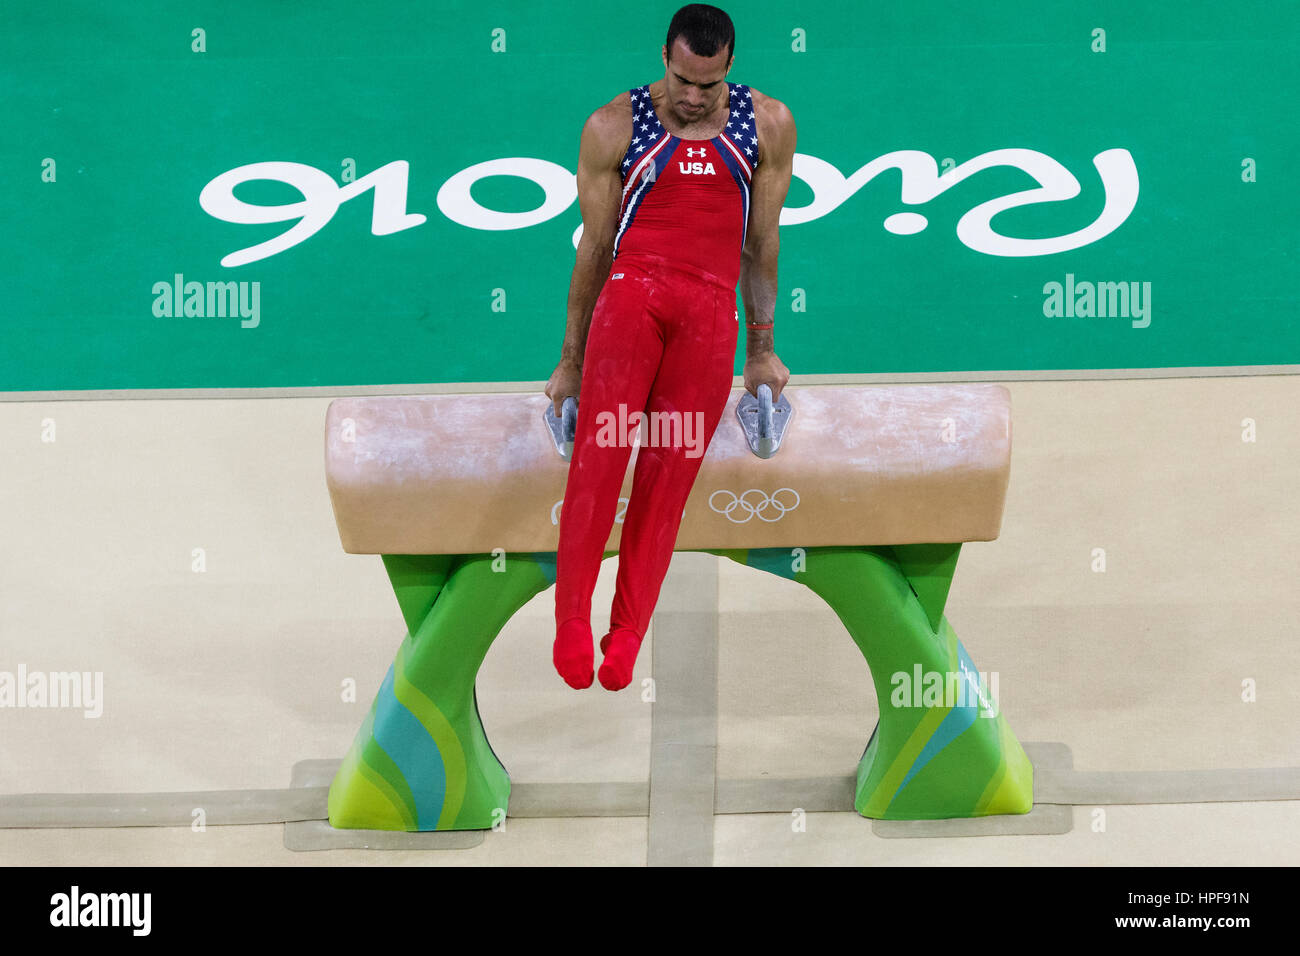 Rio de Janeiro, Brazil. 08 August 2016 Danell Leyva (USA) performs on the Pommel Horse during Men's artistic - Stock Image